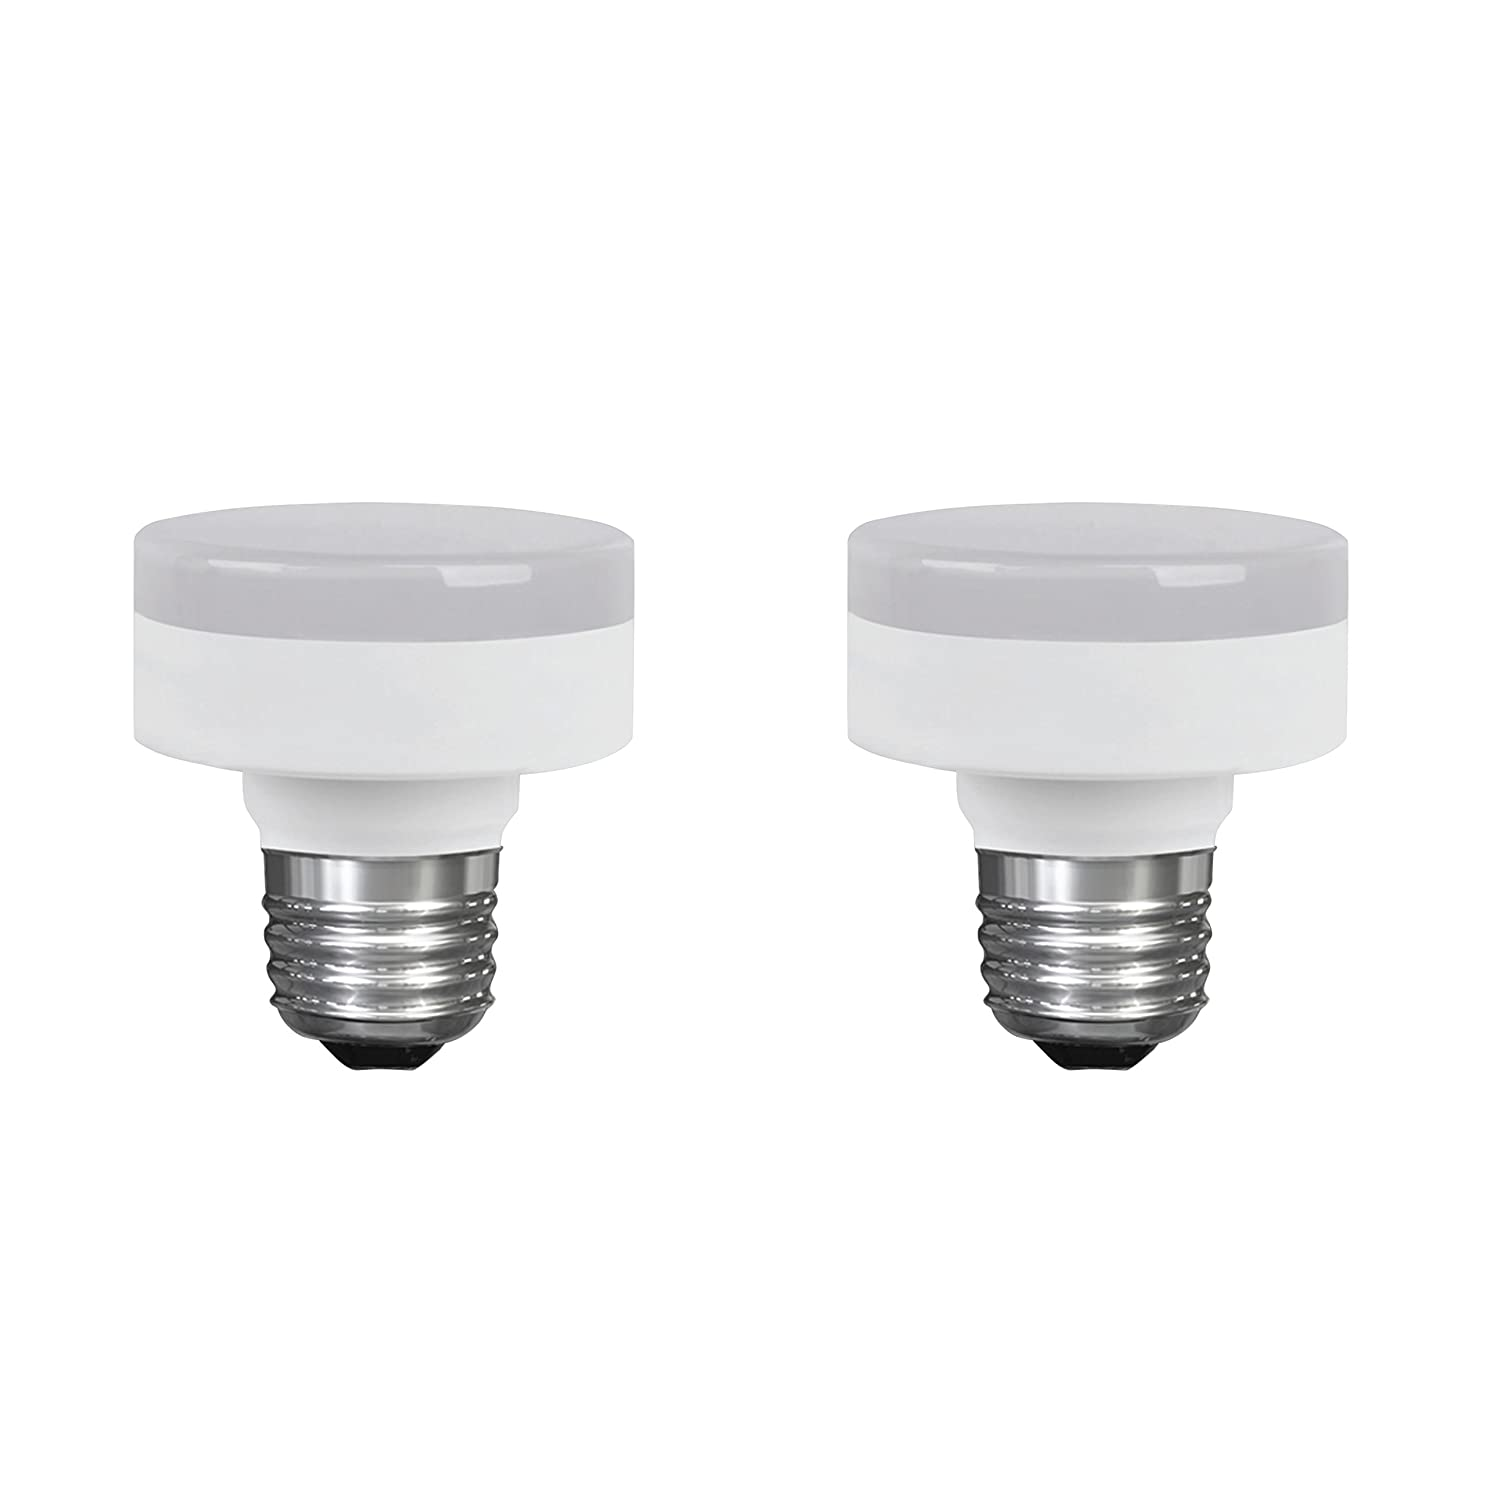 LED Closet Puck Light Bulb, Dimmable, 11W (60W Replacement), 800 Lumens, 4000K Cool White, E26 Medium Base, 120V, UL Listed (2 Pack)